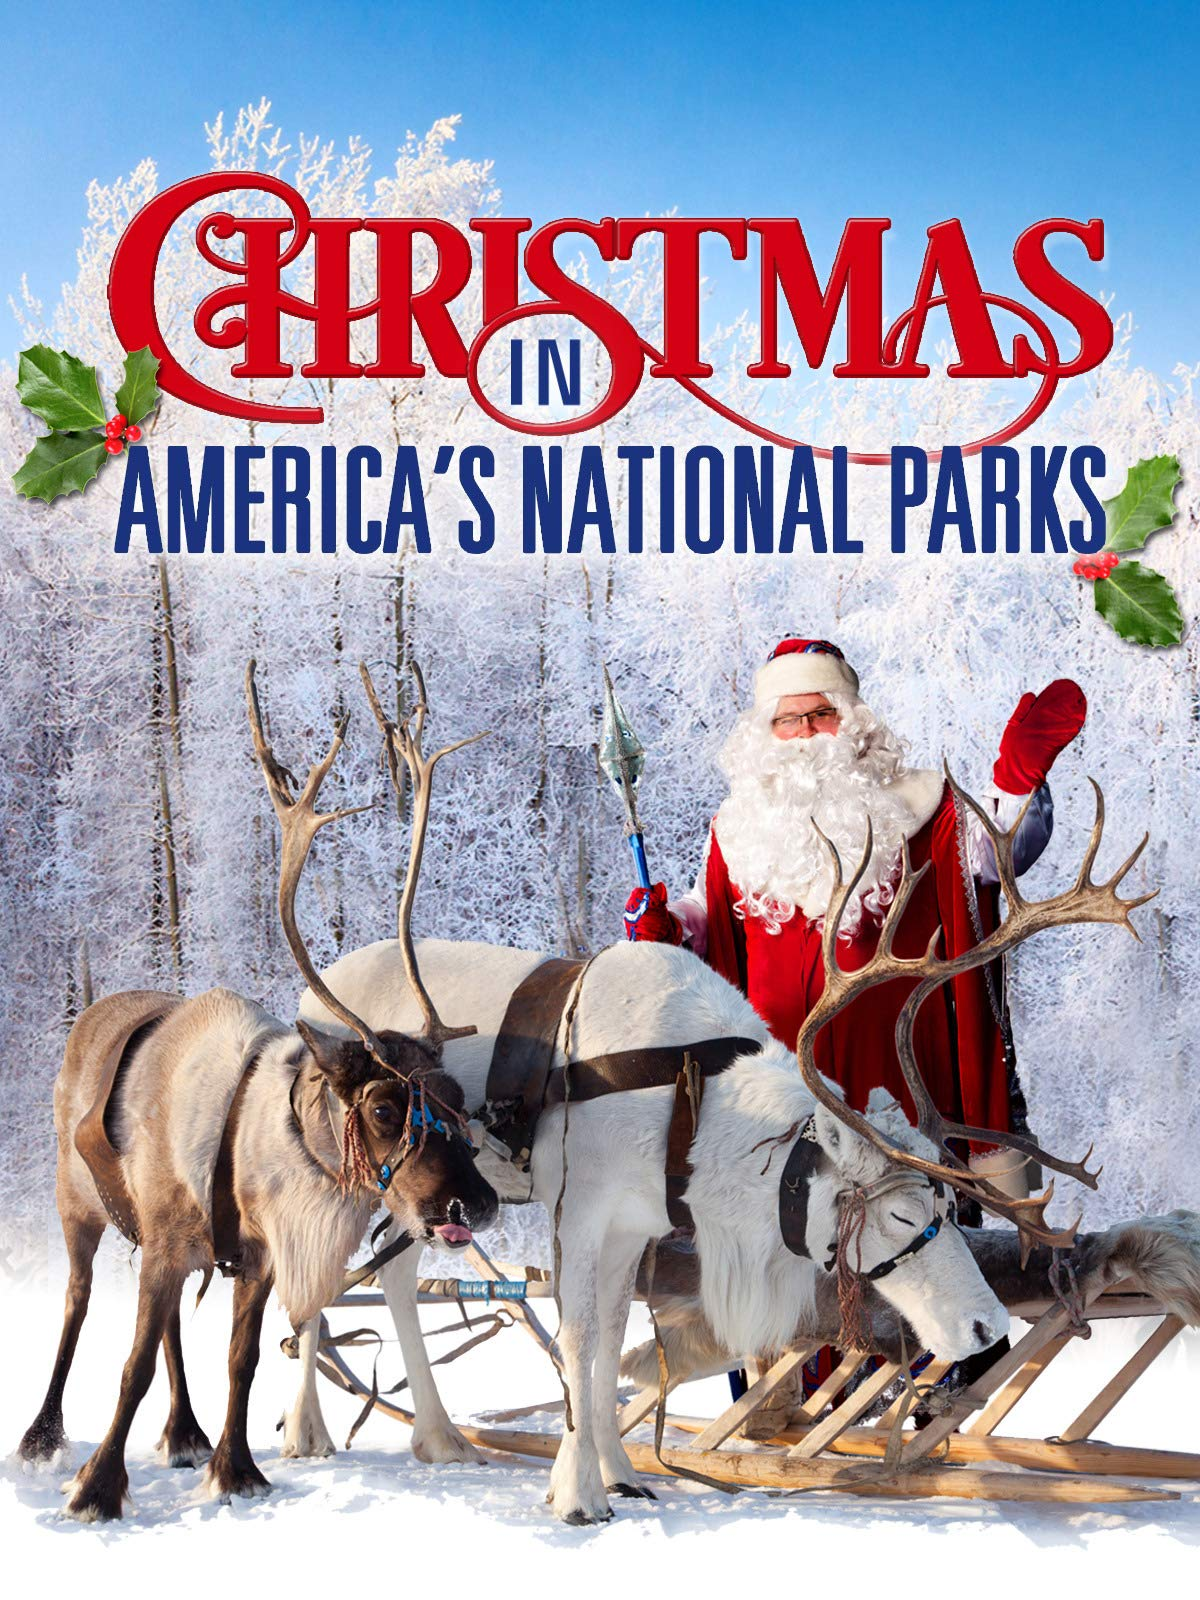 Christmas and Winter in America's National Parks